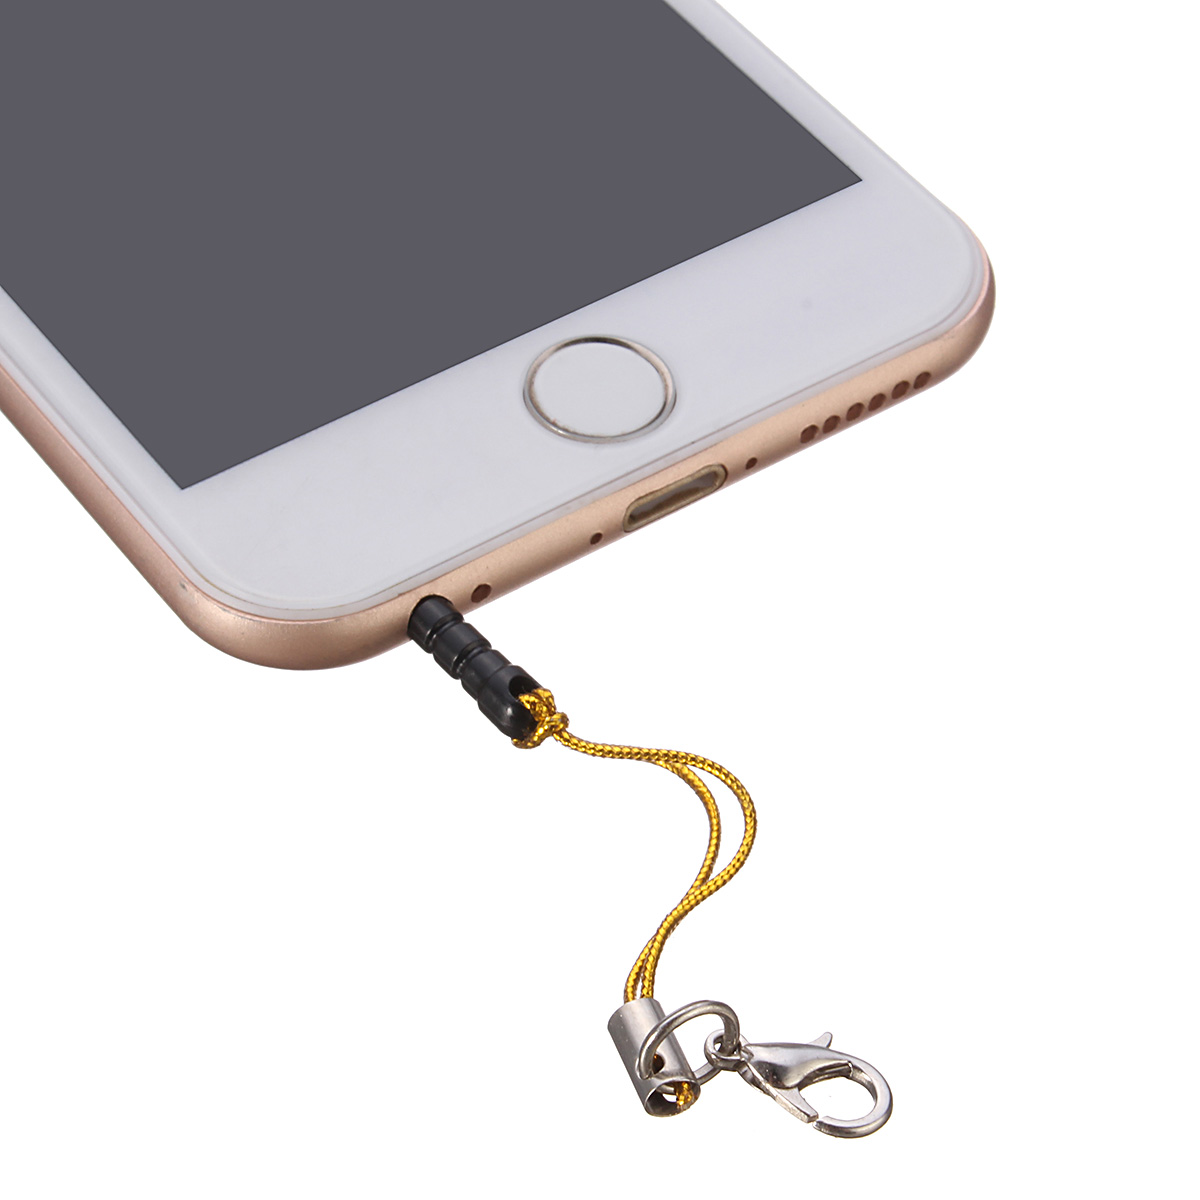 3.5mm Dust Plug Lanyard Clasp Earphone Jack Plug for iPhone Samsung Xiaomi